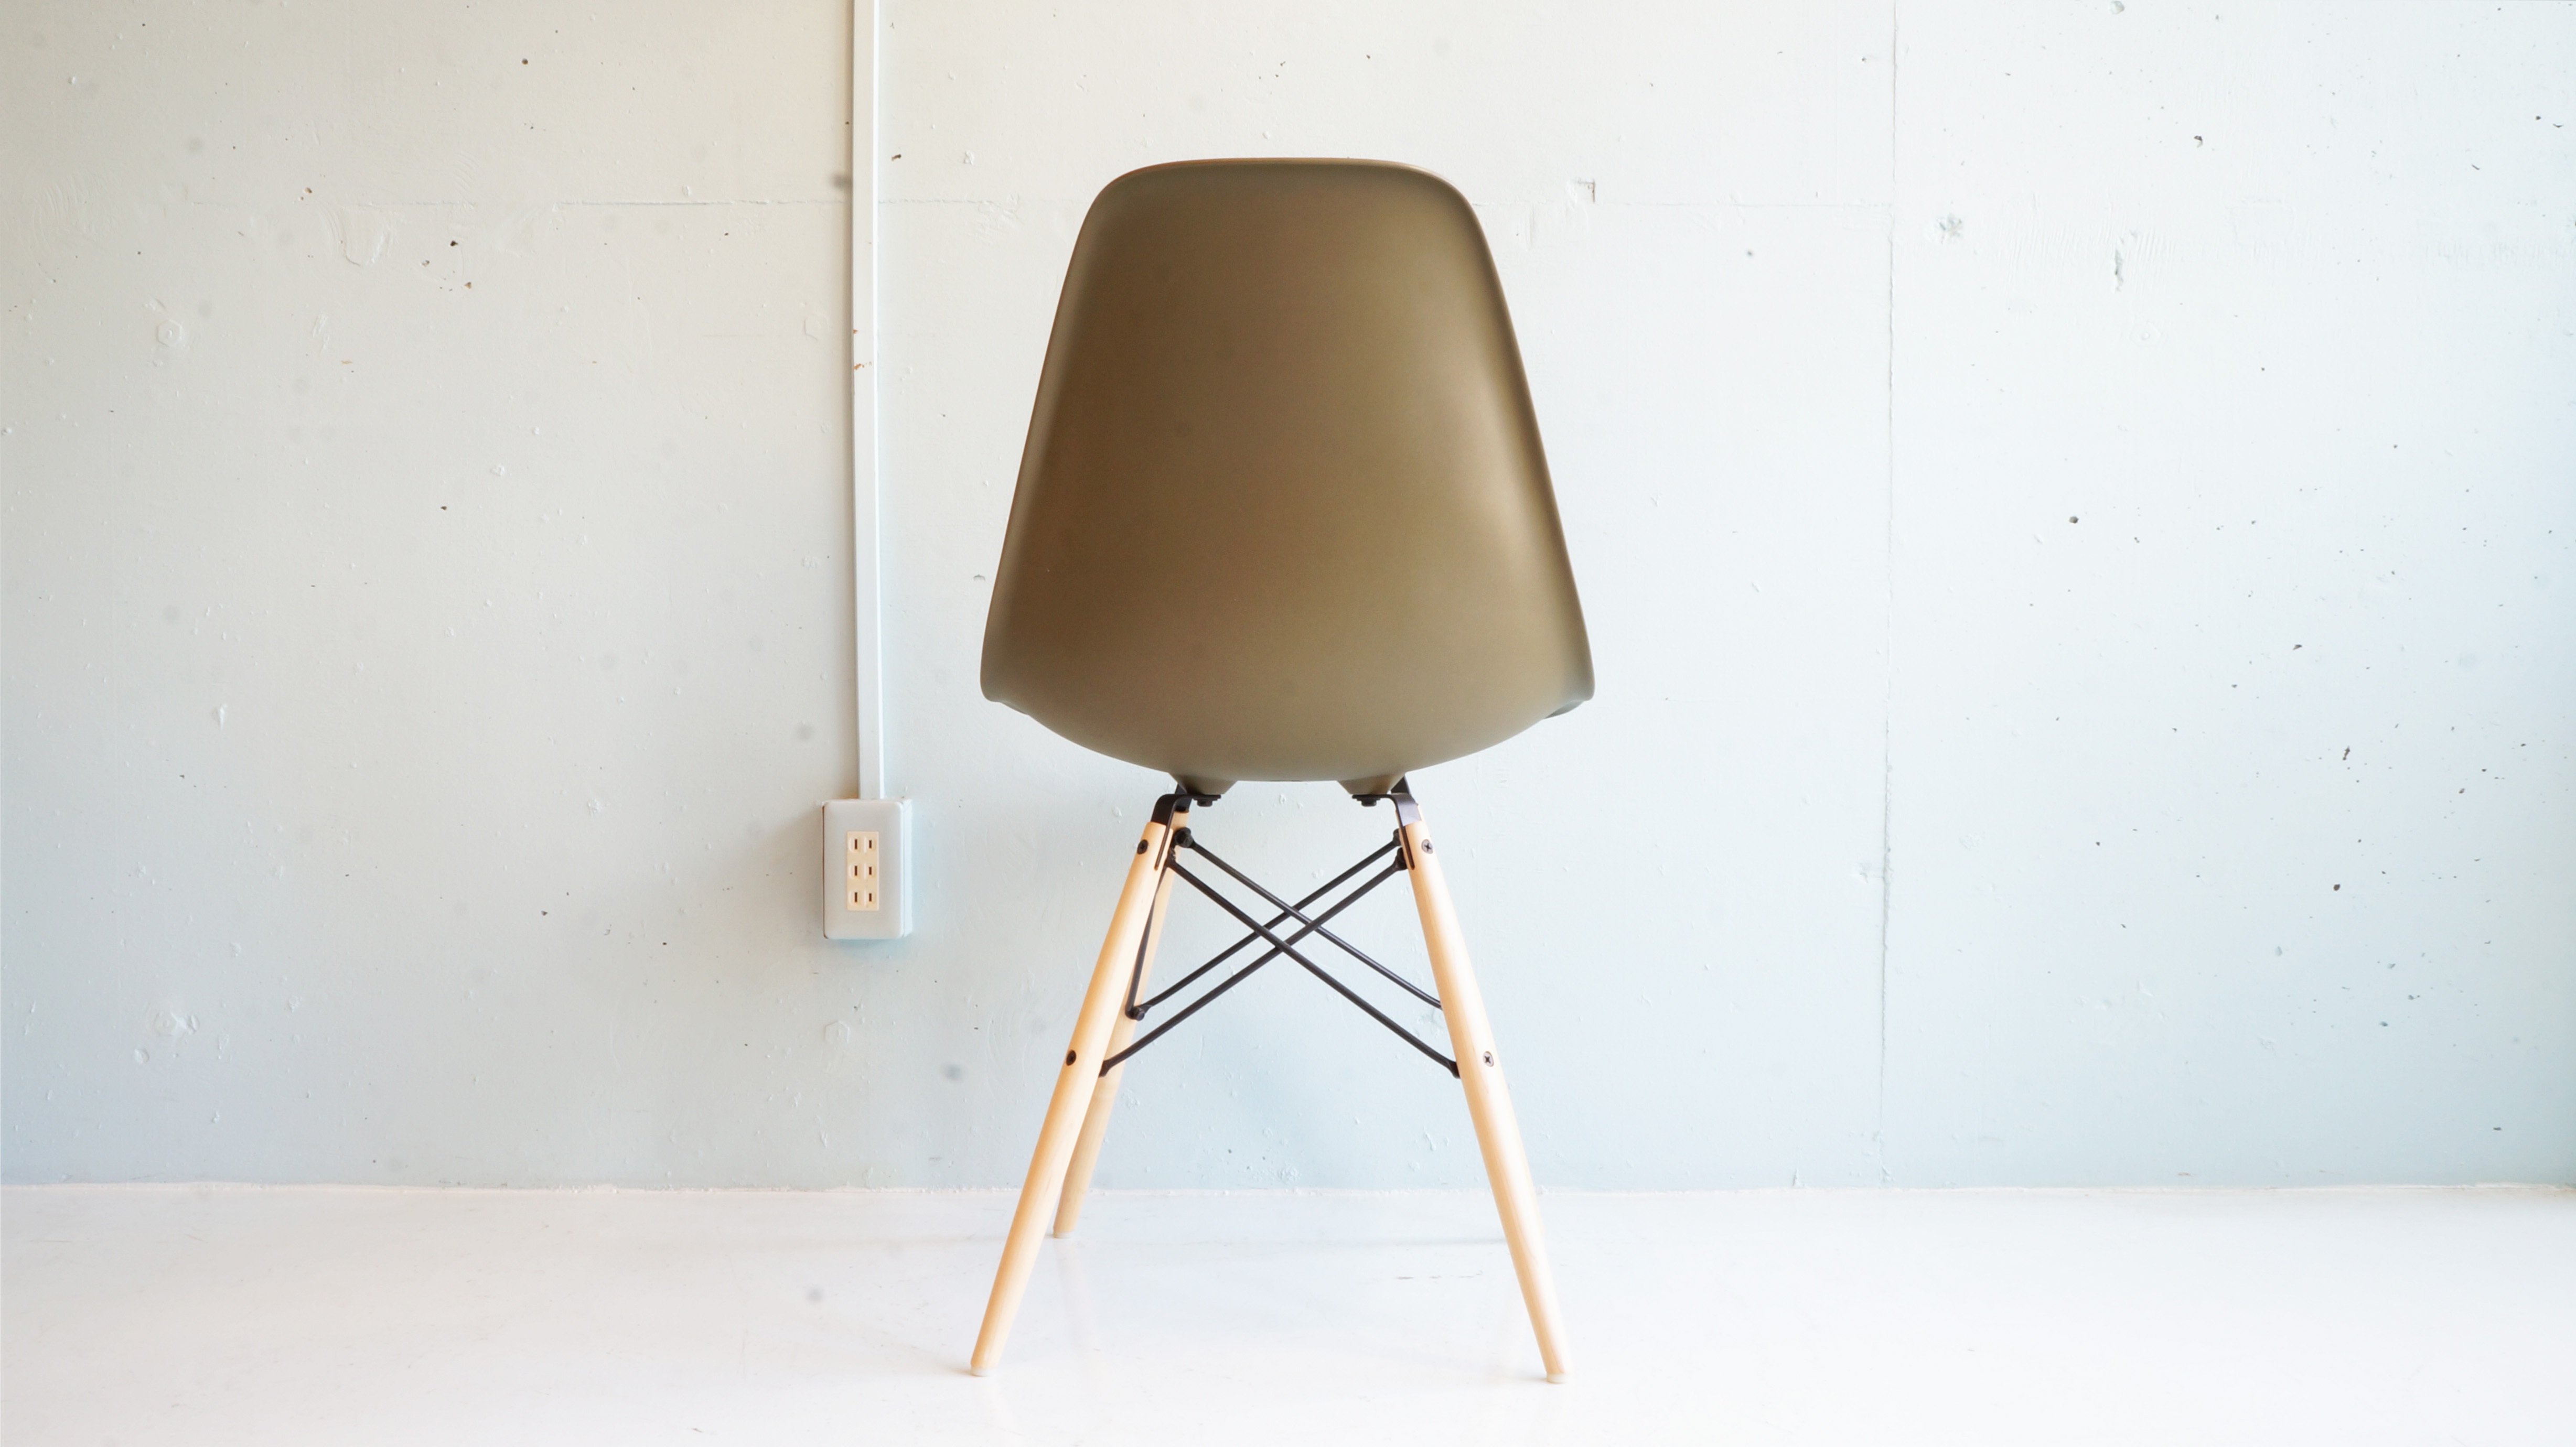 EAMES DSW CHAIR THE CONRAN SHOP LIMITED / イームズ コンランショップ別注 サイドシェルチェア